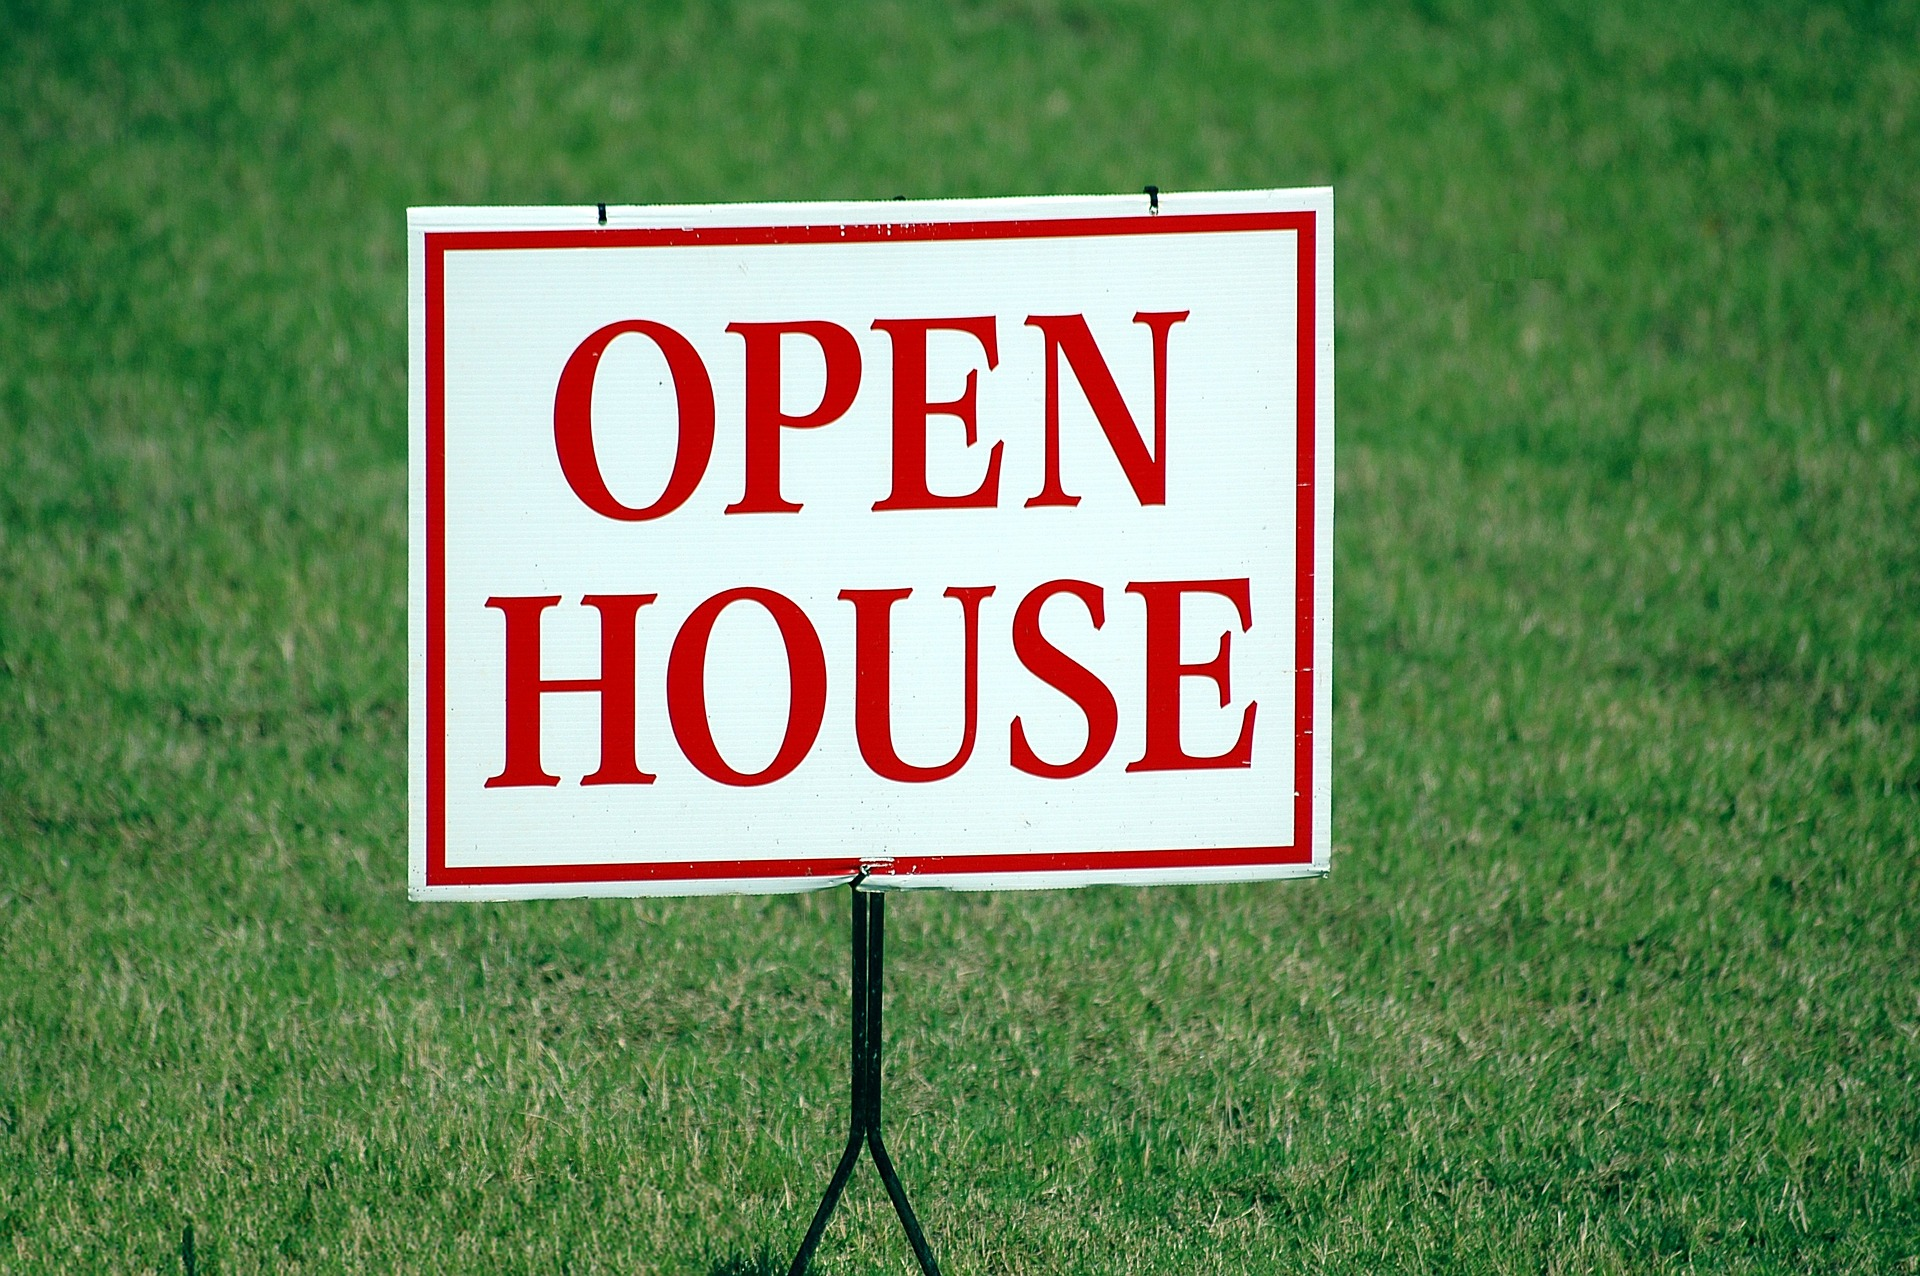 Real_Estate_Lead_Generation_Ideas_For_Open_Houses.jpg